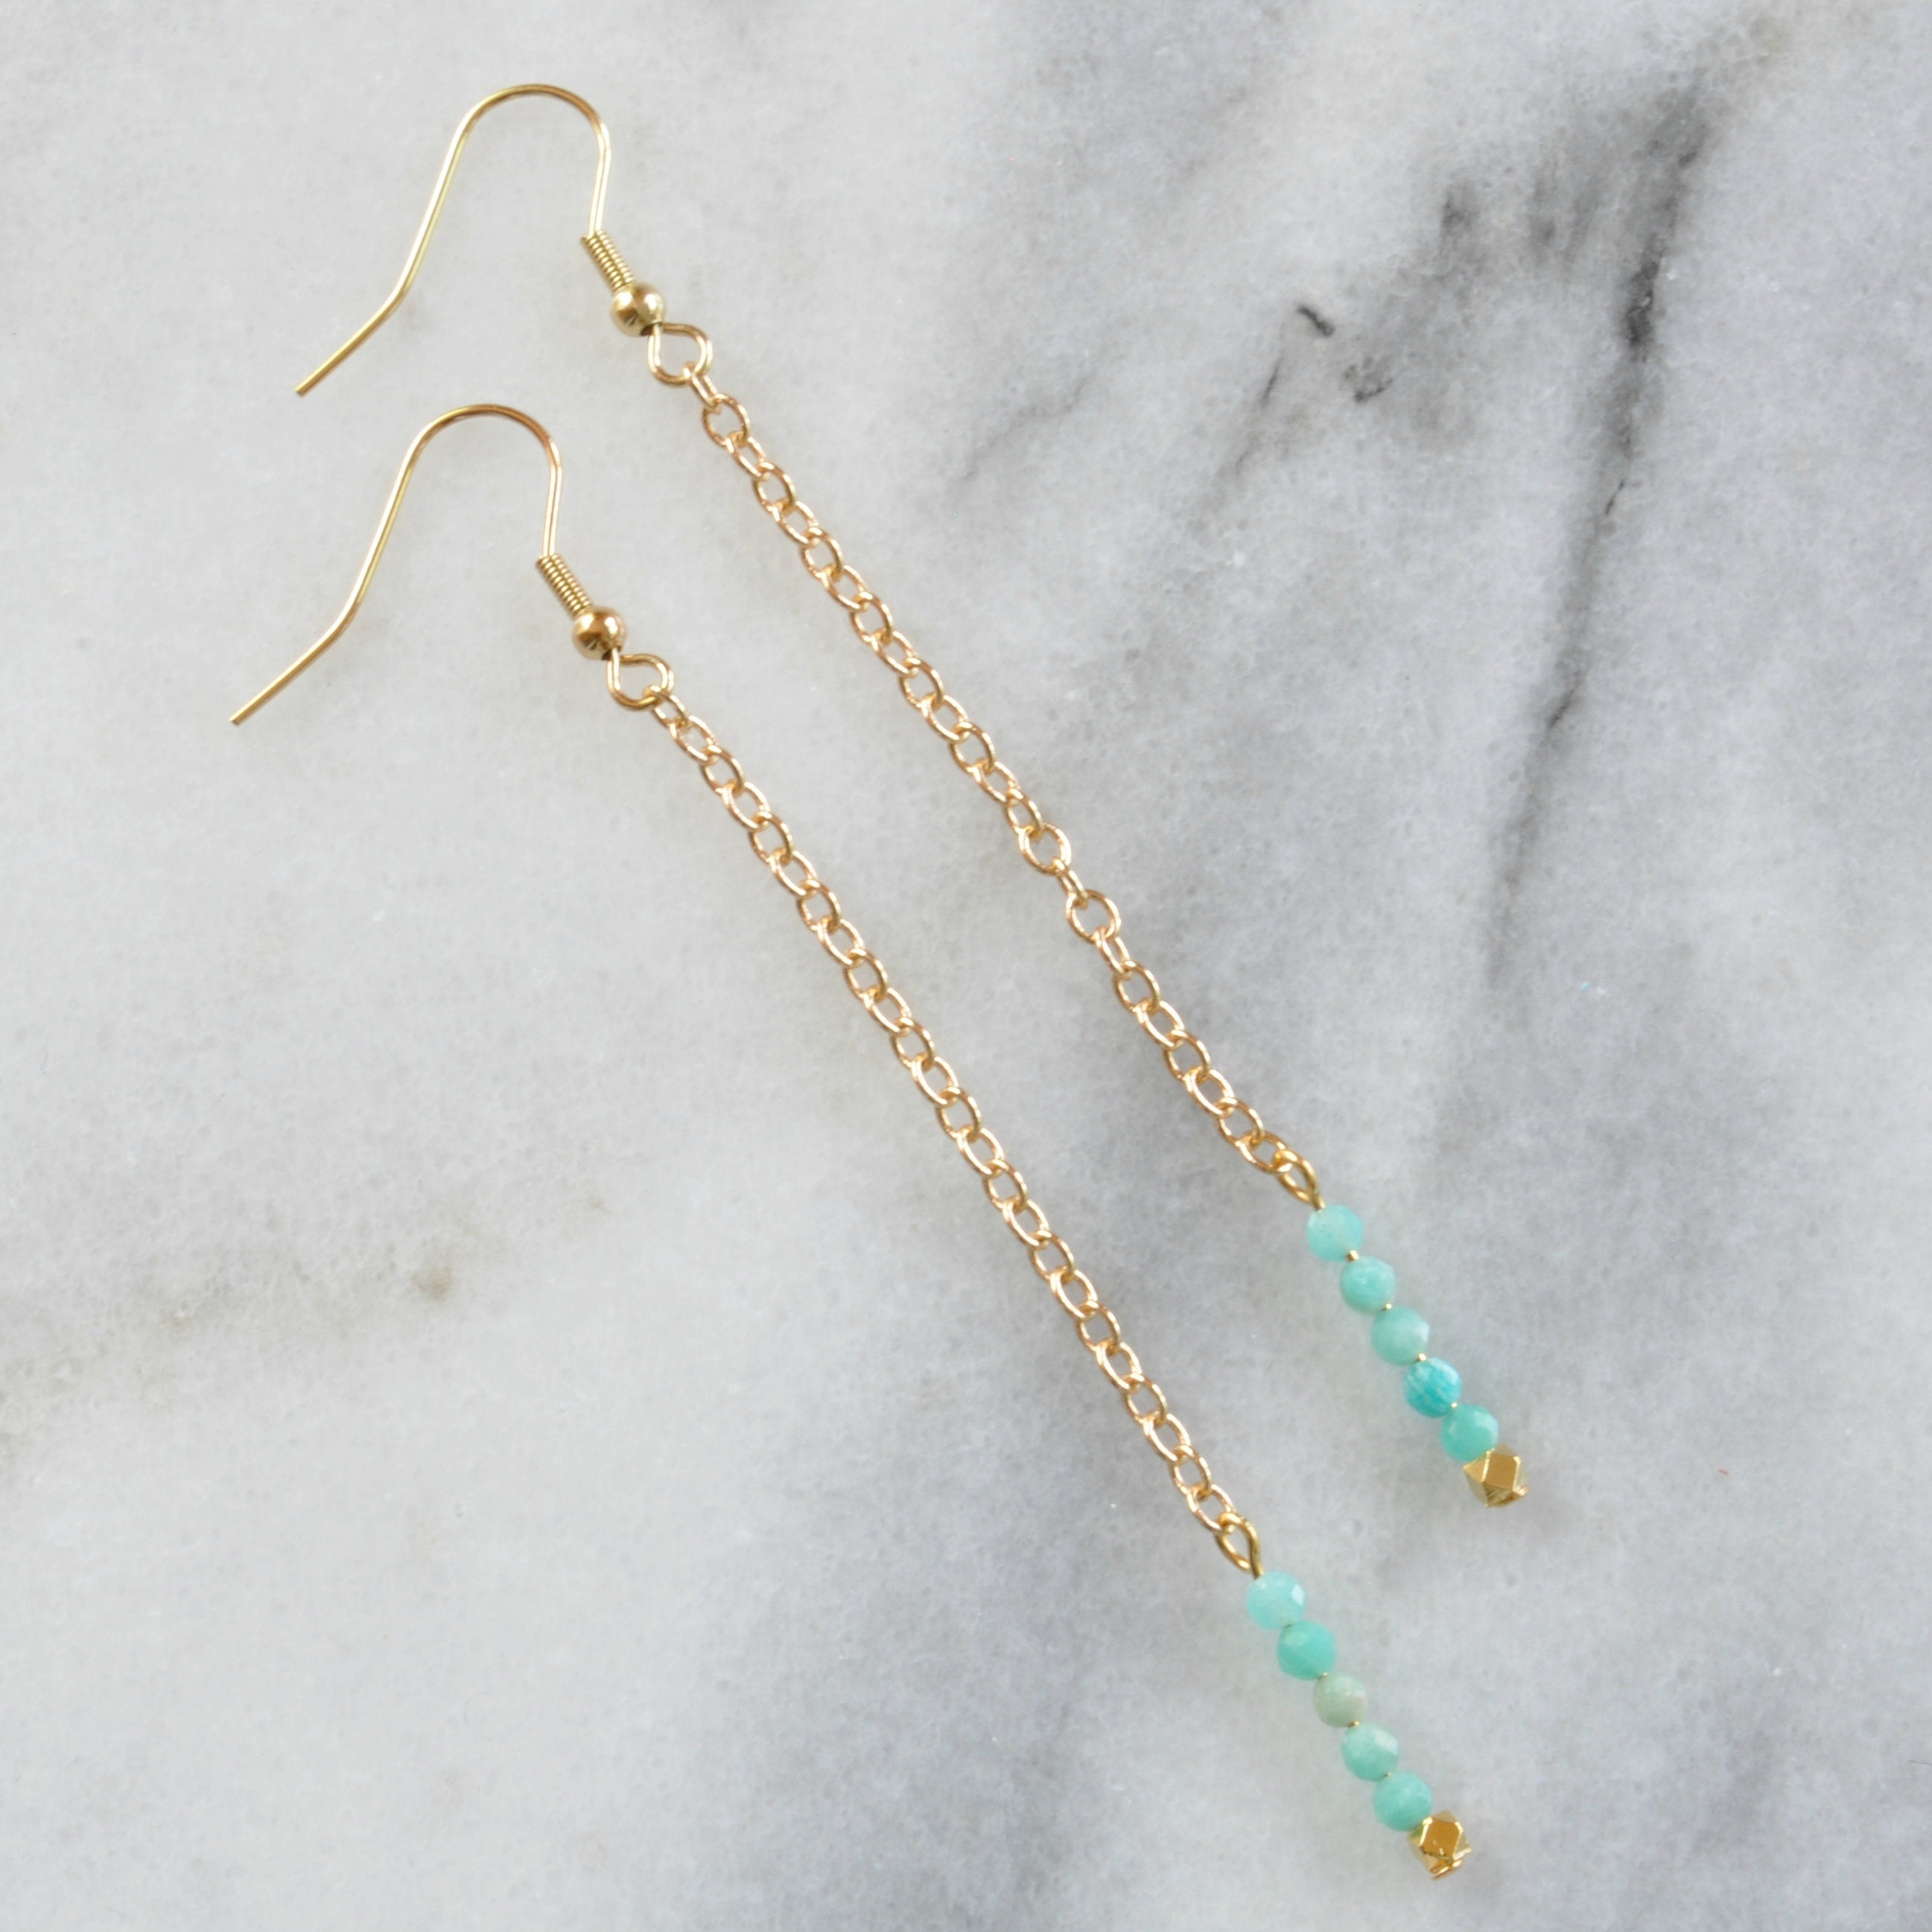 Libby & Smee Gemstone Earrings with Amazonite Beads, still life